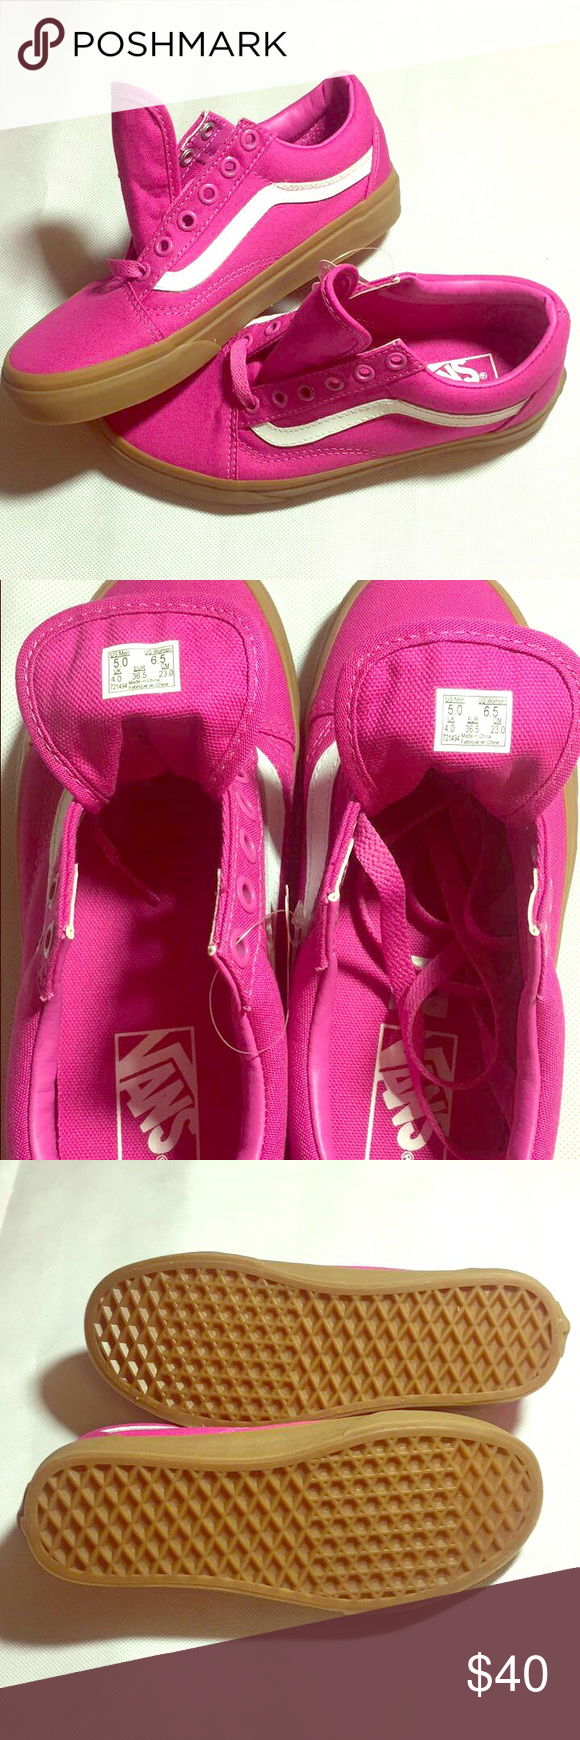 0a364d9896b4 Old Skool Vans Old Skool Vans (light gum) raspberry rose. Very cute never  worn brand new Vans Shoes Sneakers